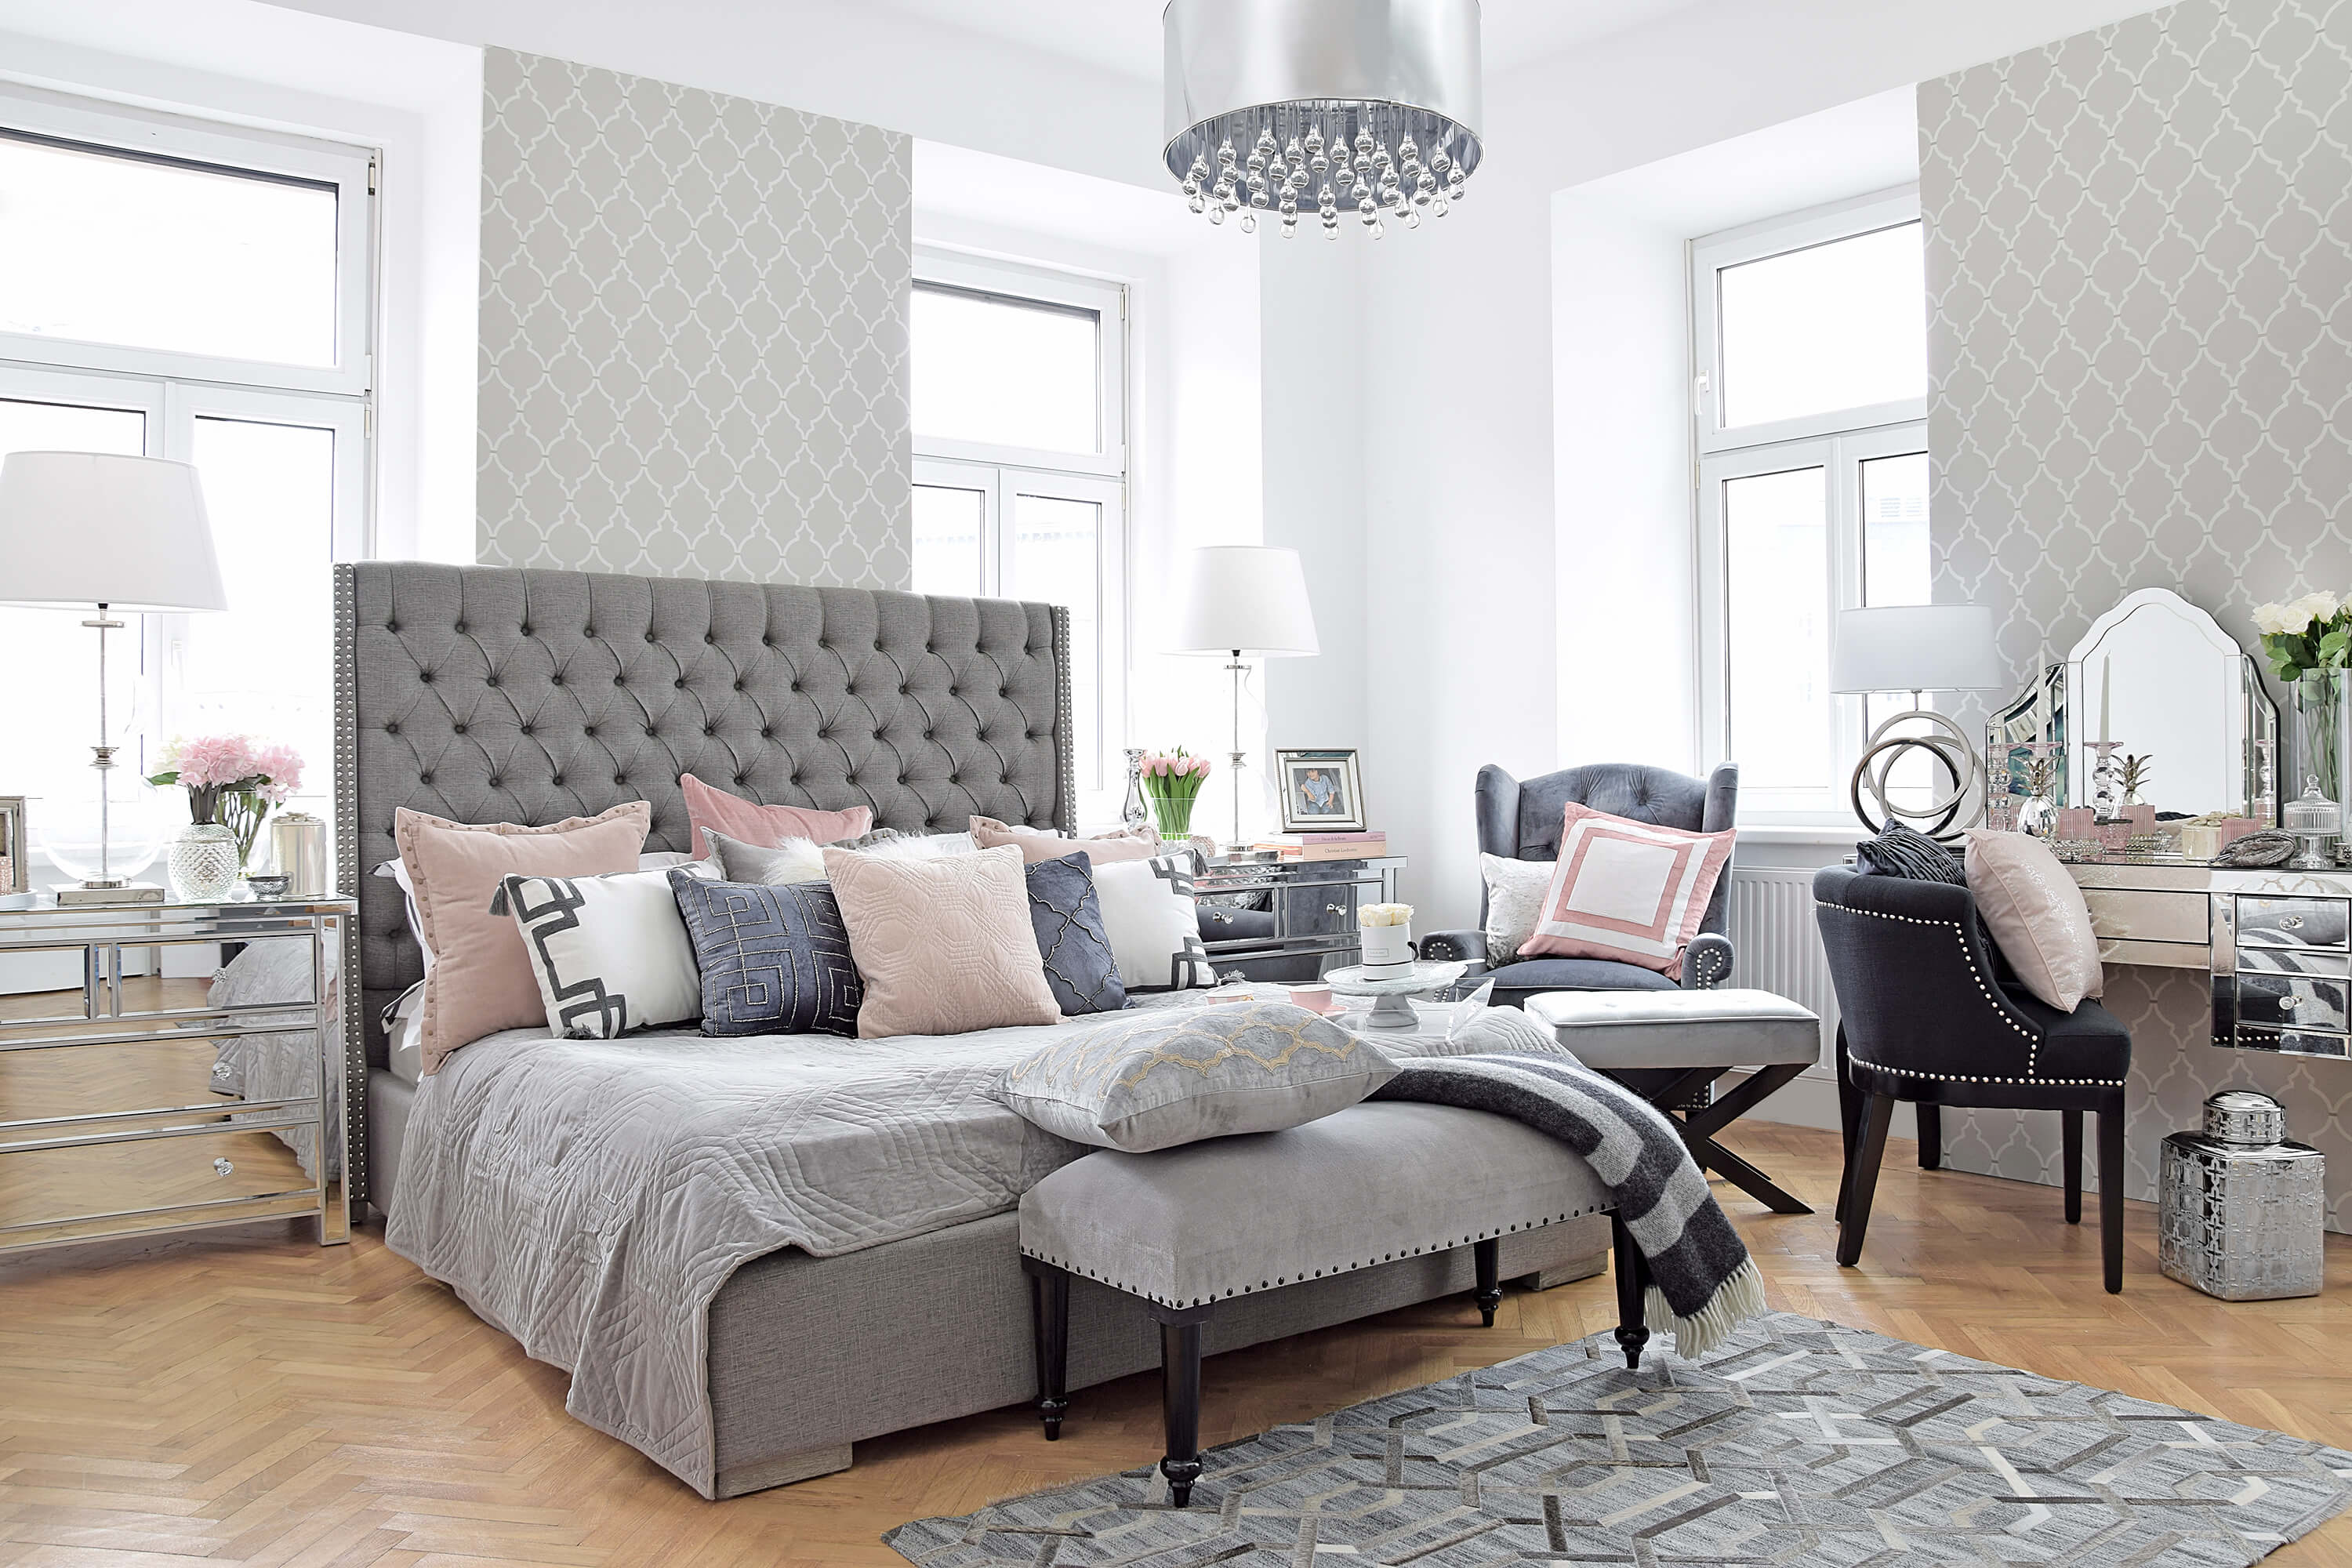 Master Bedroom Schlafzimmer In Grau Rosa Looks